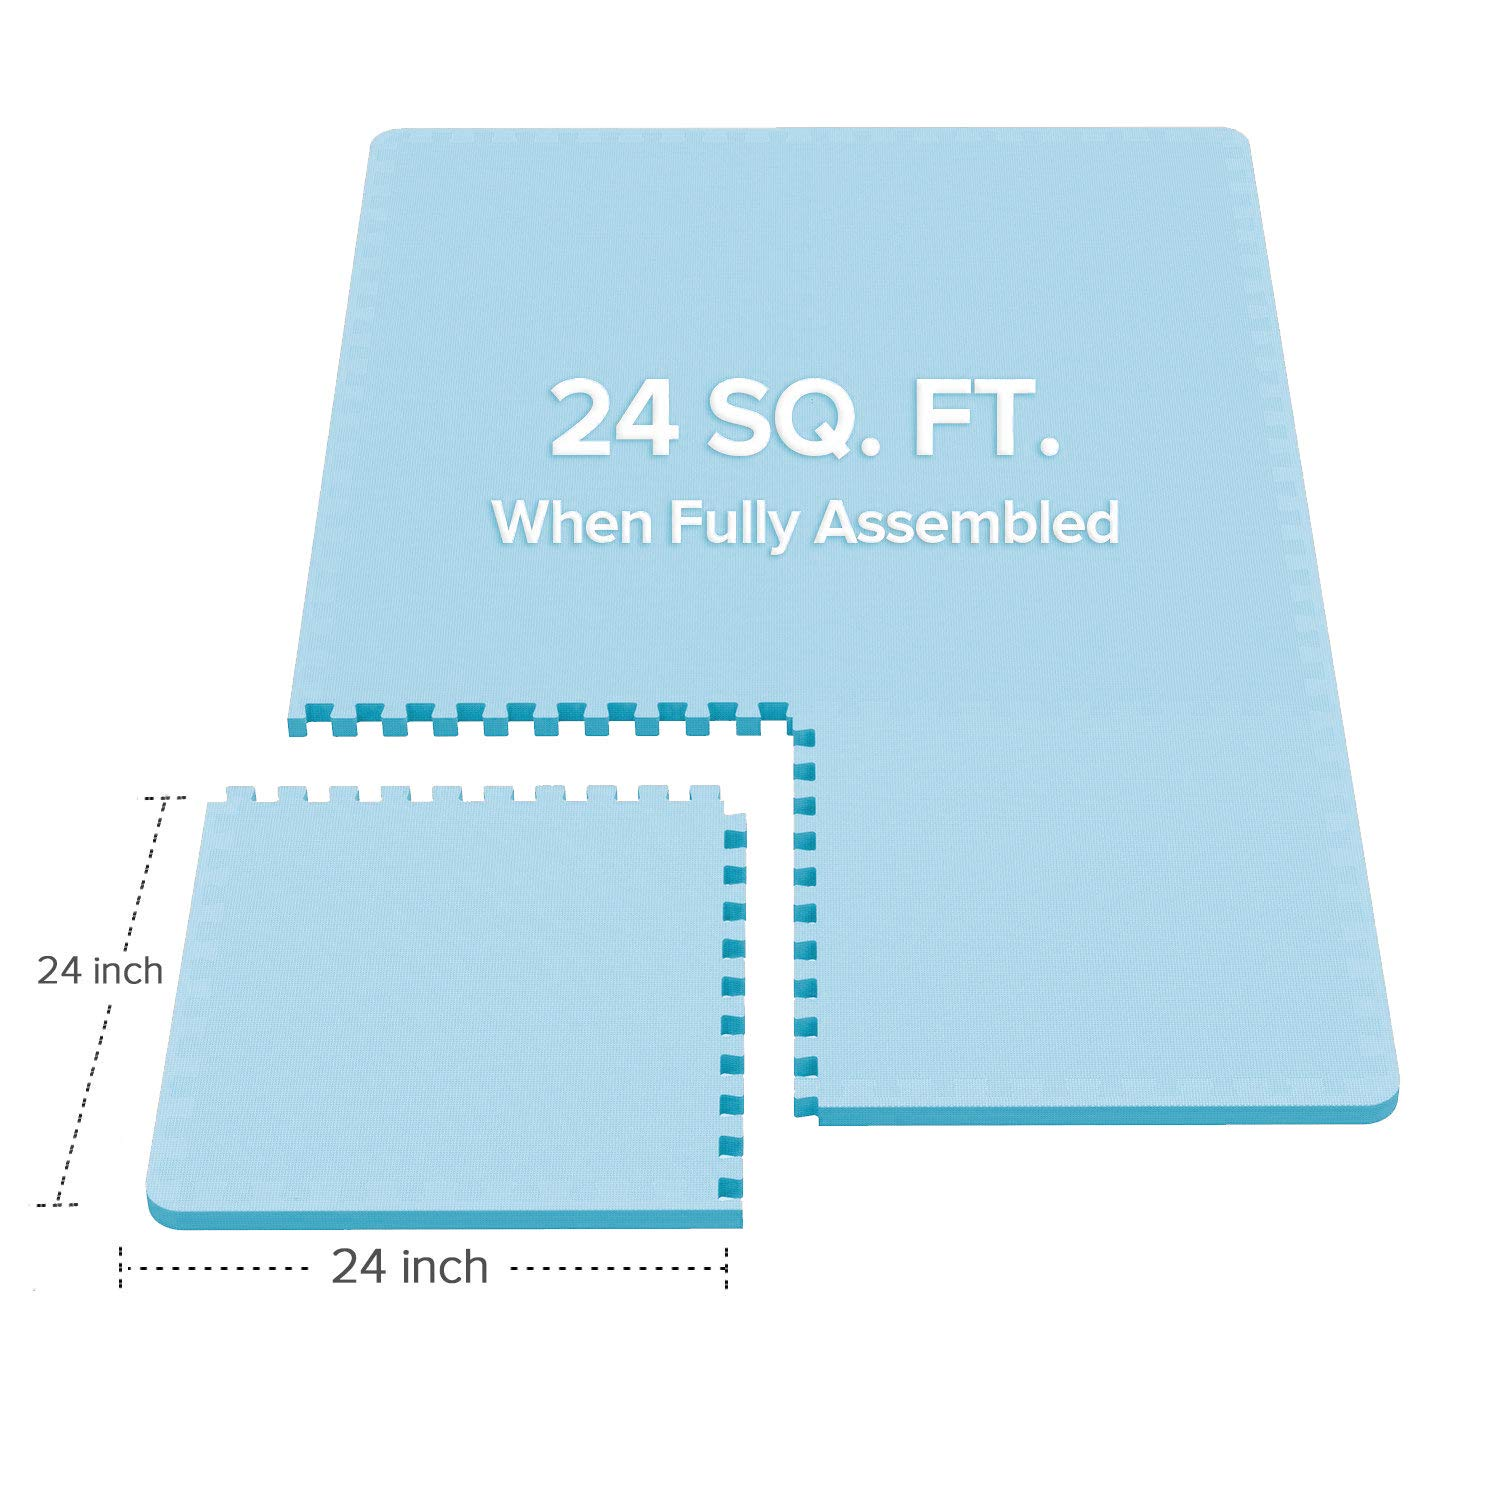 LEVOIT Puzzle Exercise Mat, Premium EVA Foam Interlocking Tiles, Protective Flooring for Gym Equipment and Cushions for Workouts, 24 SQ FT (6 Tiles, 12 Borders) (Blue) by LEVOIT (Image #2)